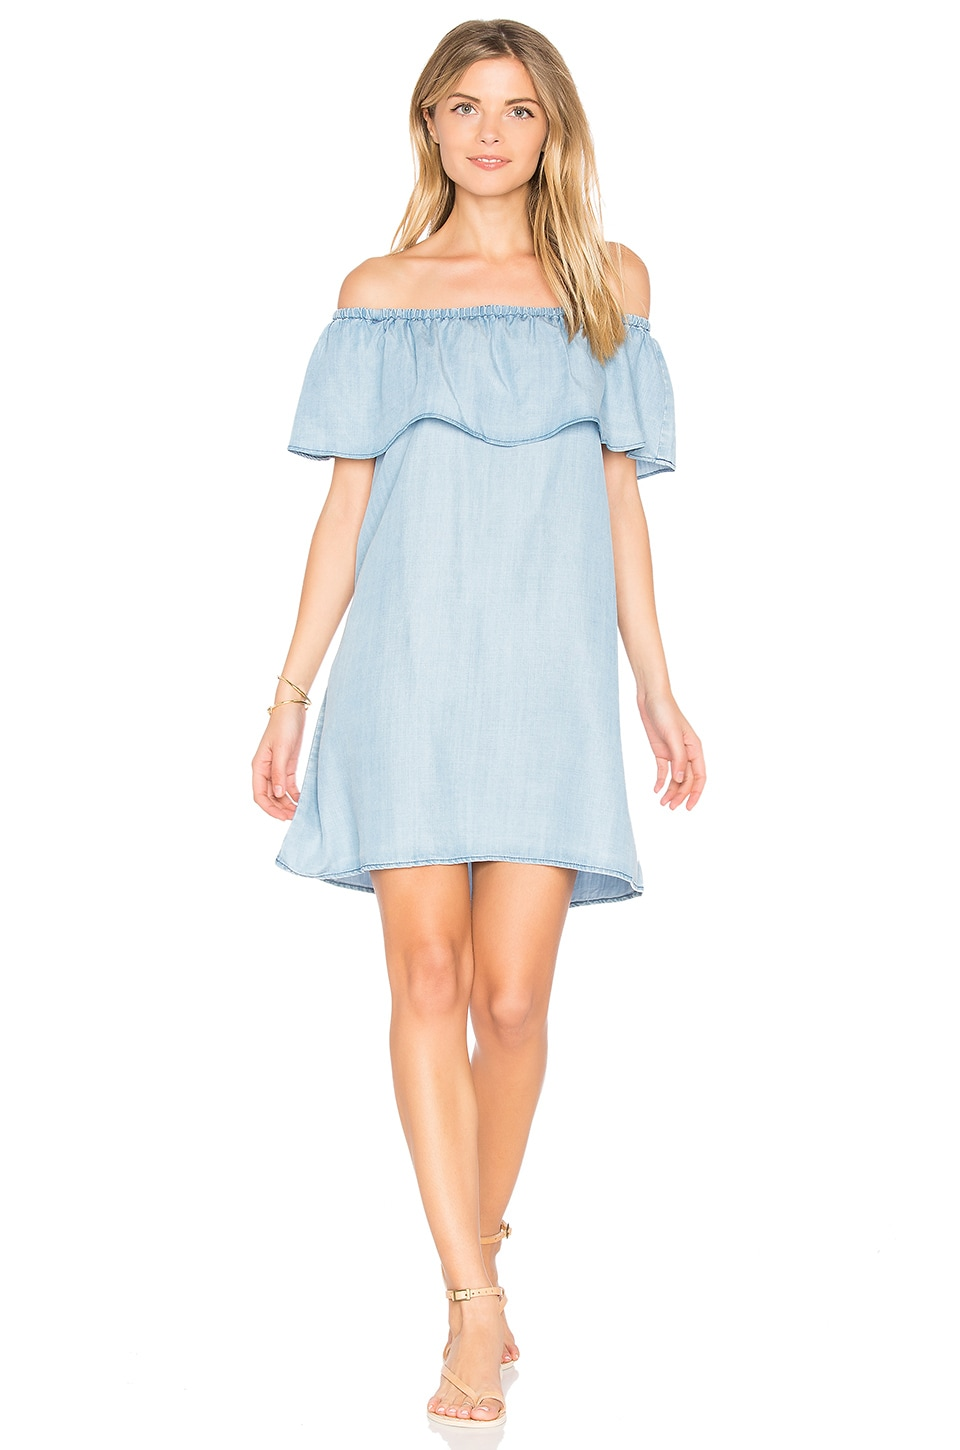 BB Dakota Maci Dress in Light Blue